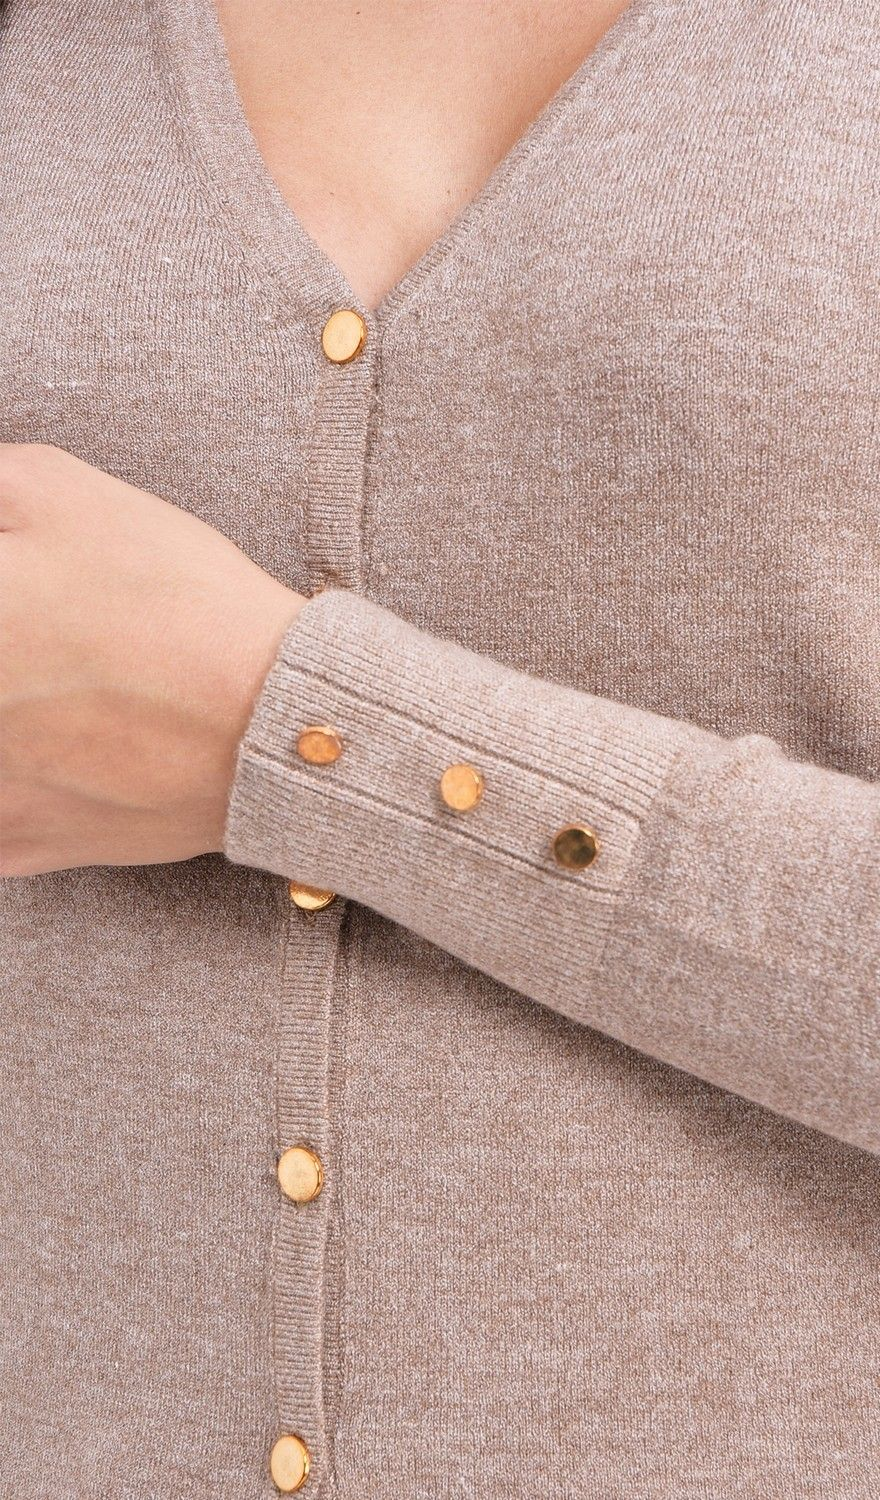 Assuili V-neck Cardigan with Gold Buttons in Beige